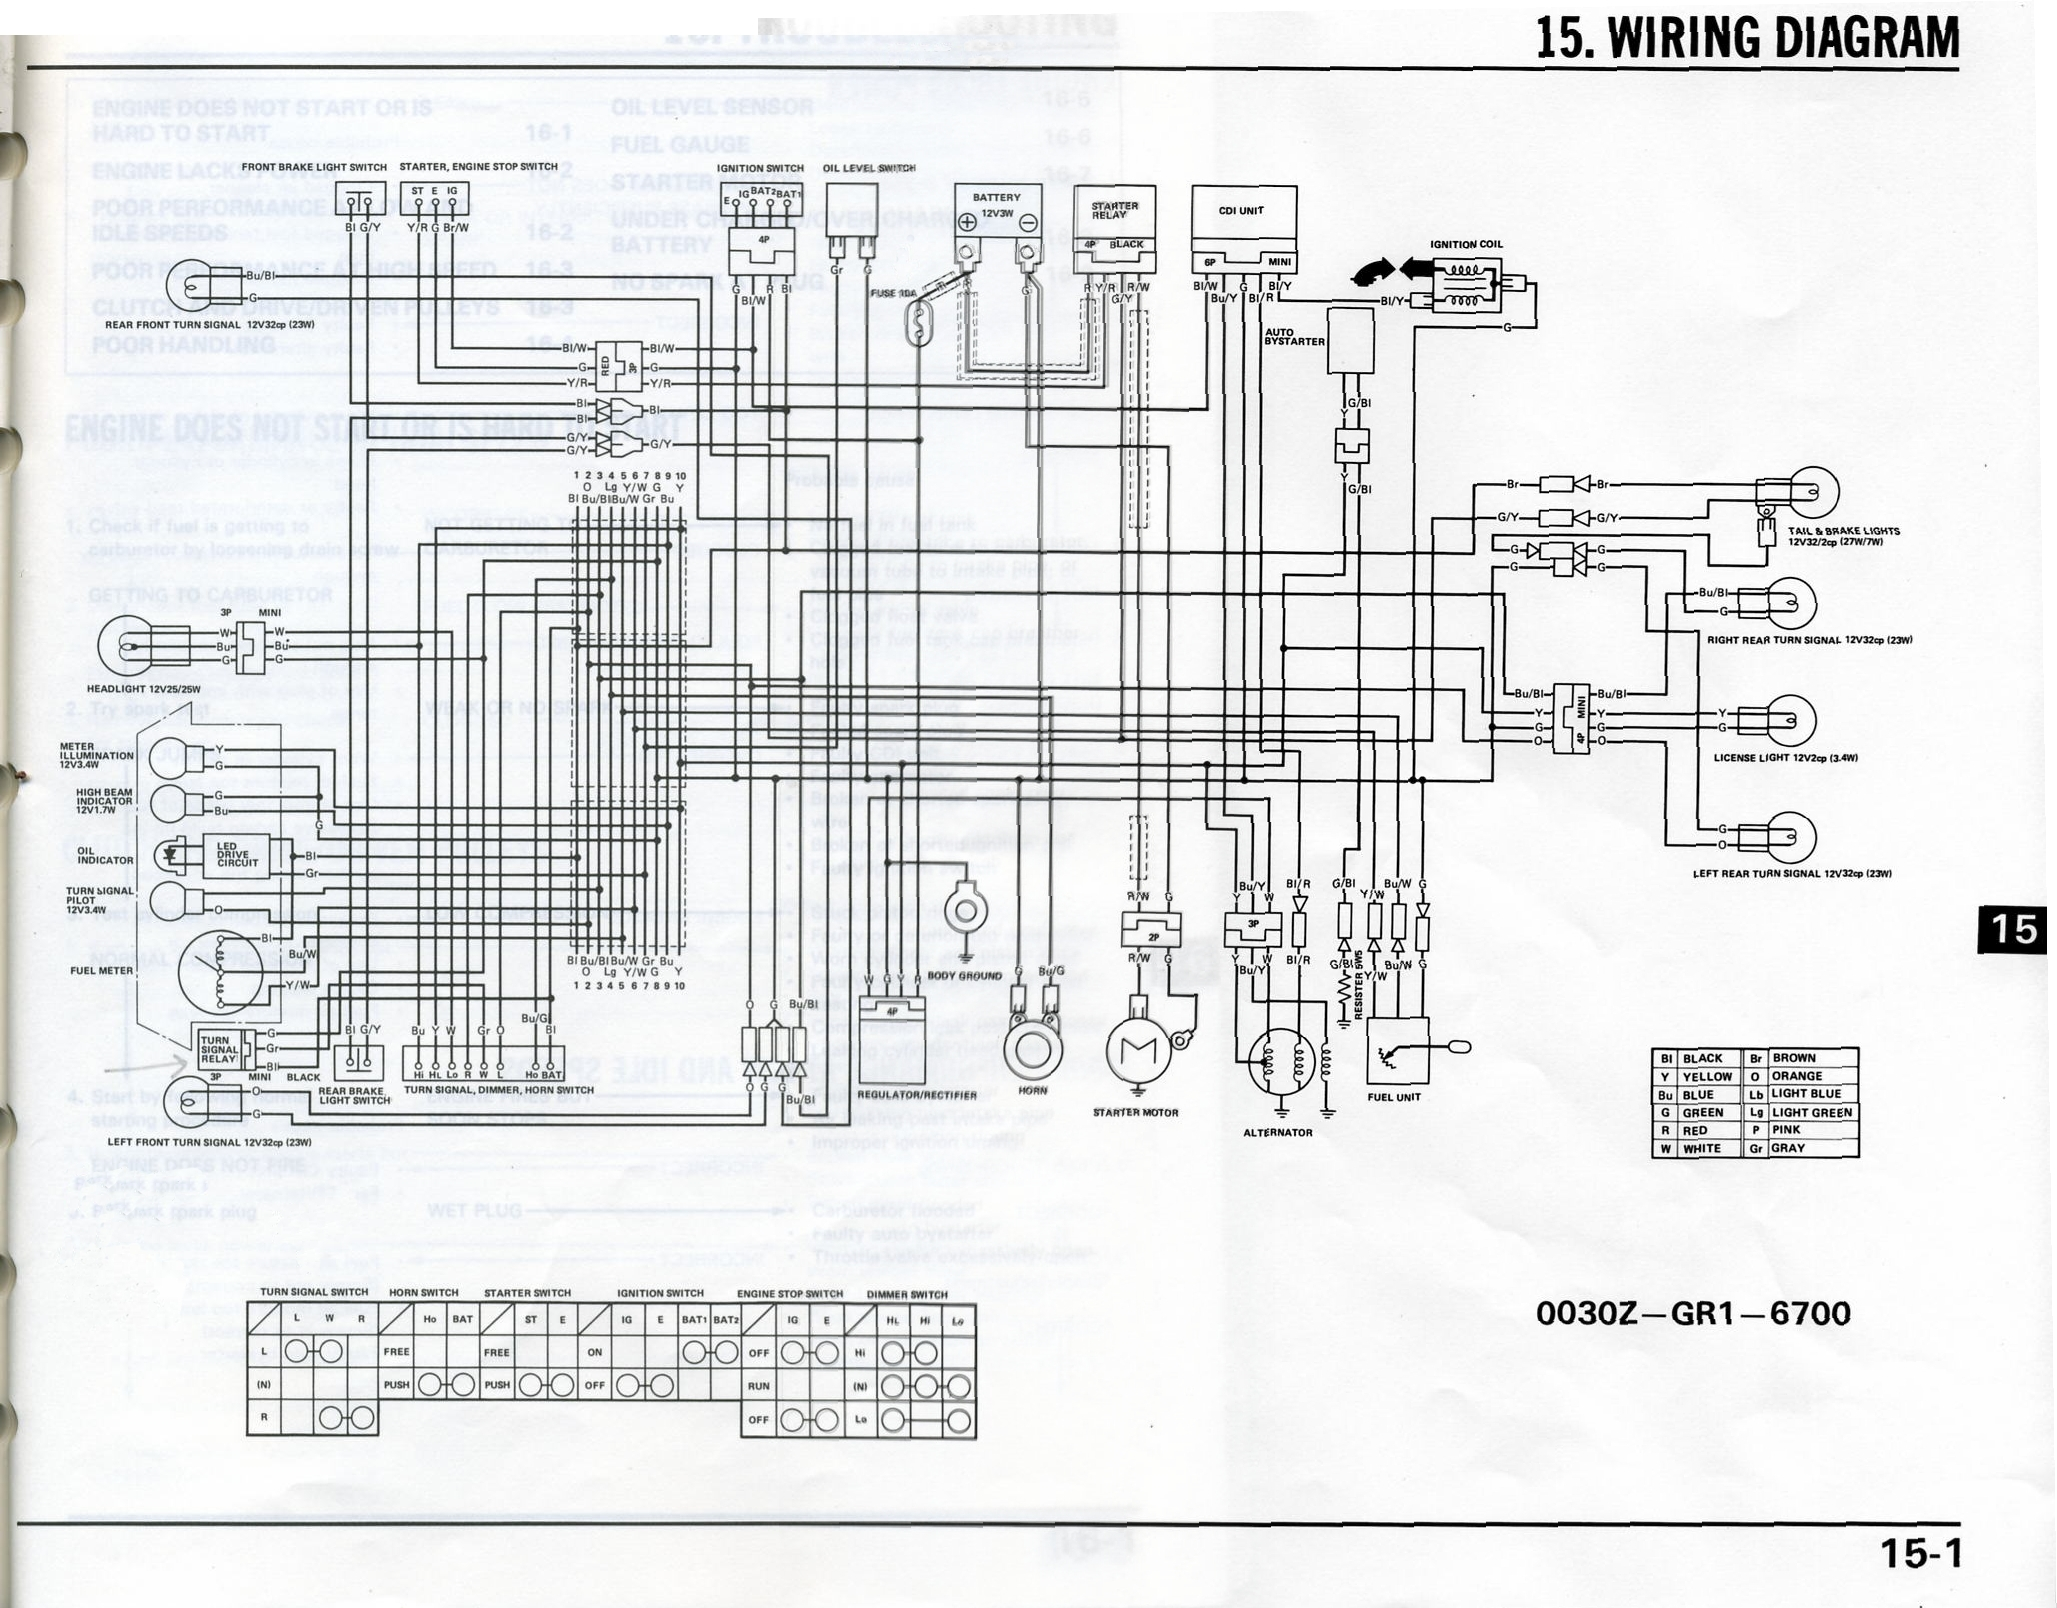 SE50_1987_Wire_Diagram honda spree and elite 50 forums \u2022 view topic honda elite (se50 honda spree wiring diagram at bayanpartner.co